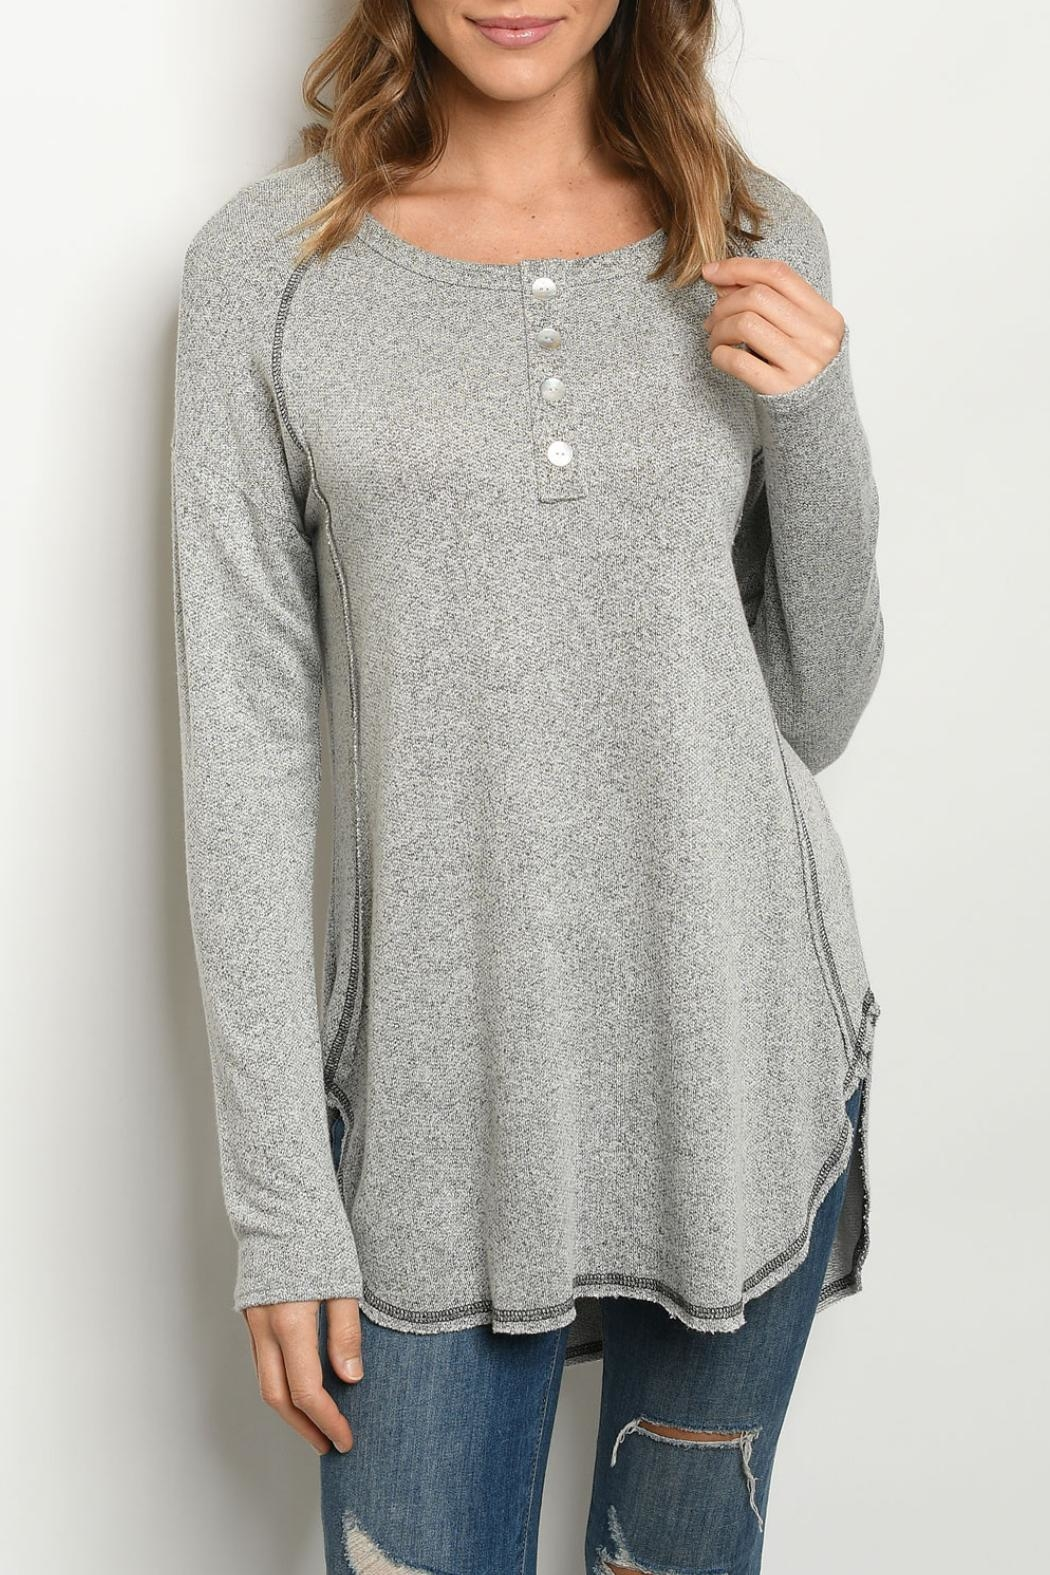 Gilli Grey Relaxed Tunic - Main Image